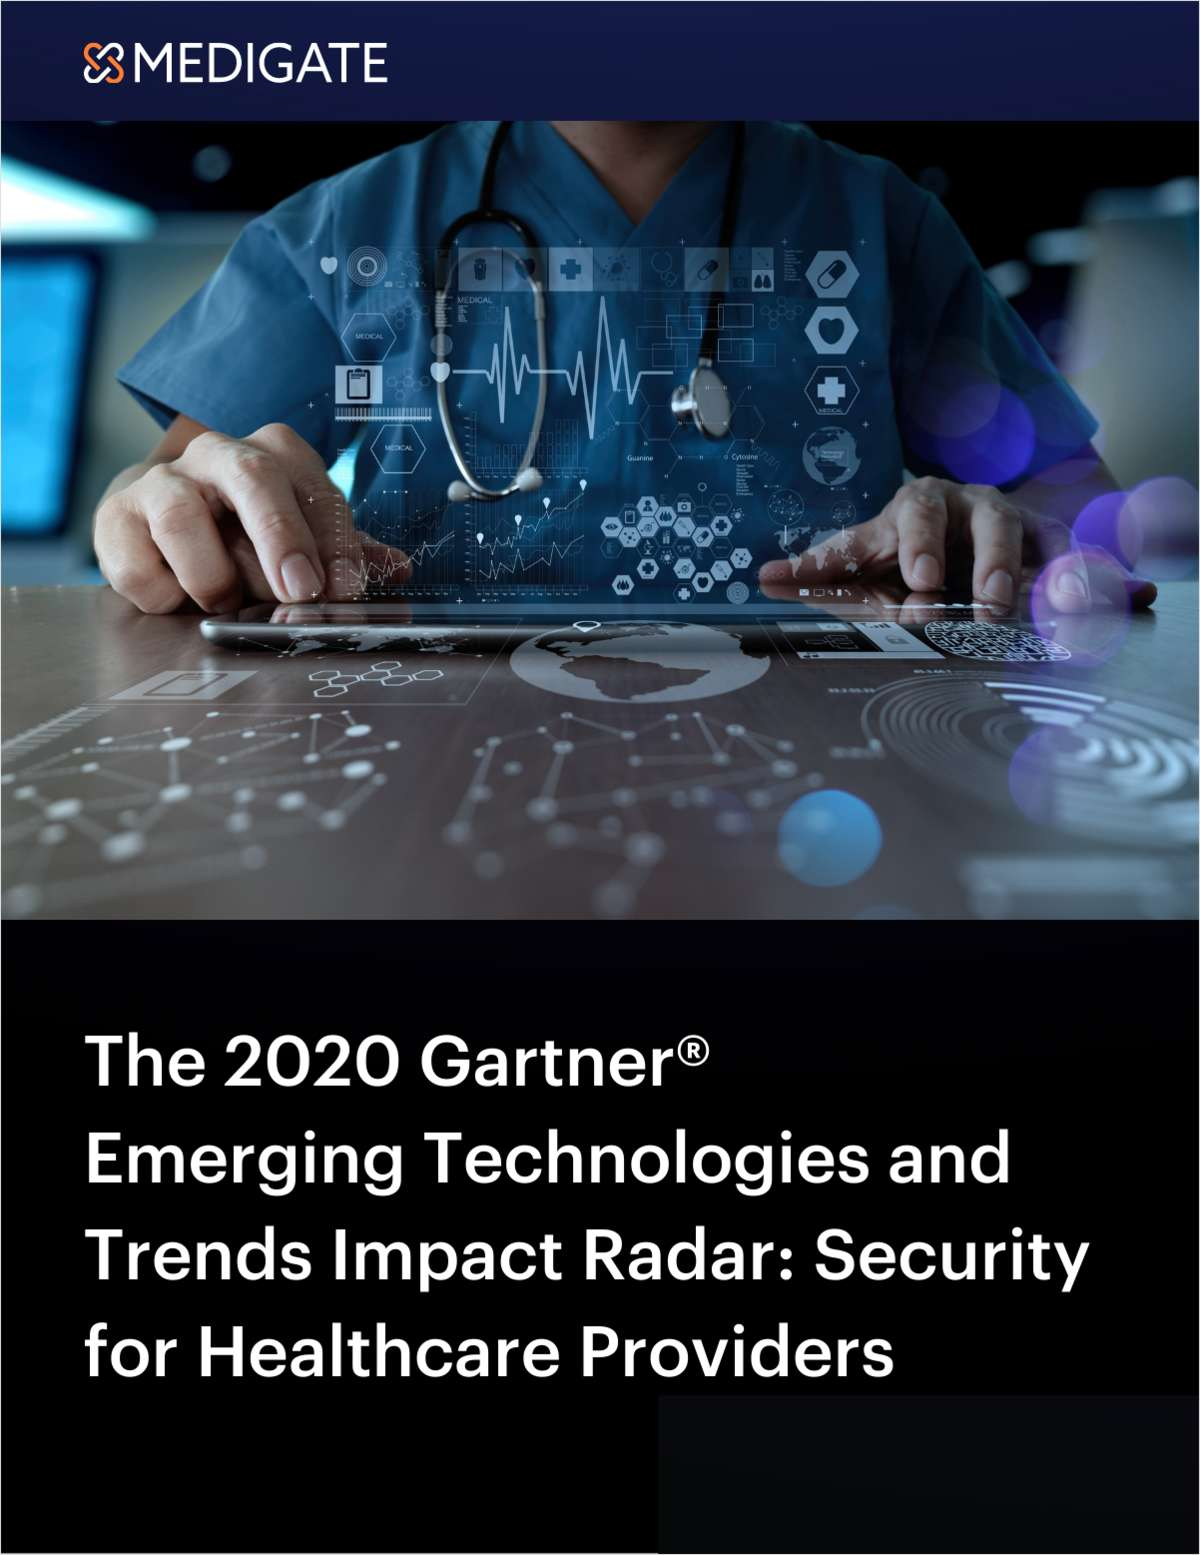 Emerging Technologies and Trends Impact Radar: Security for Healthcare Providers